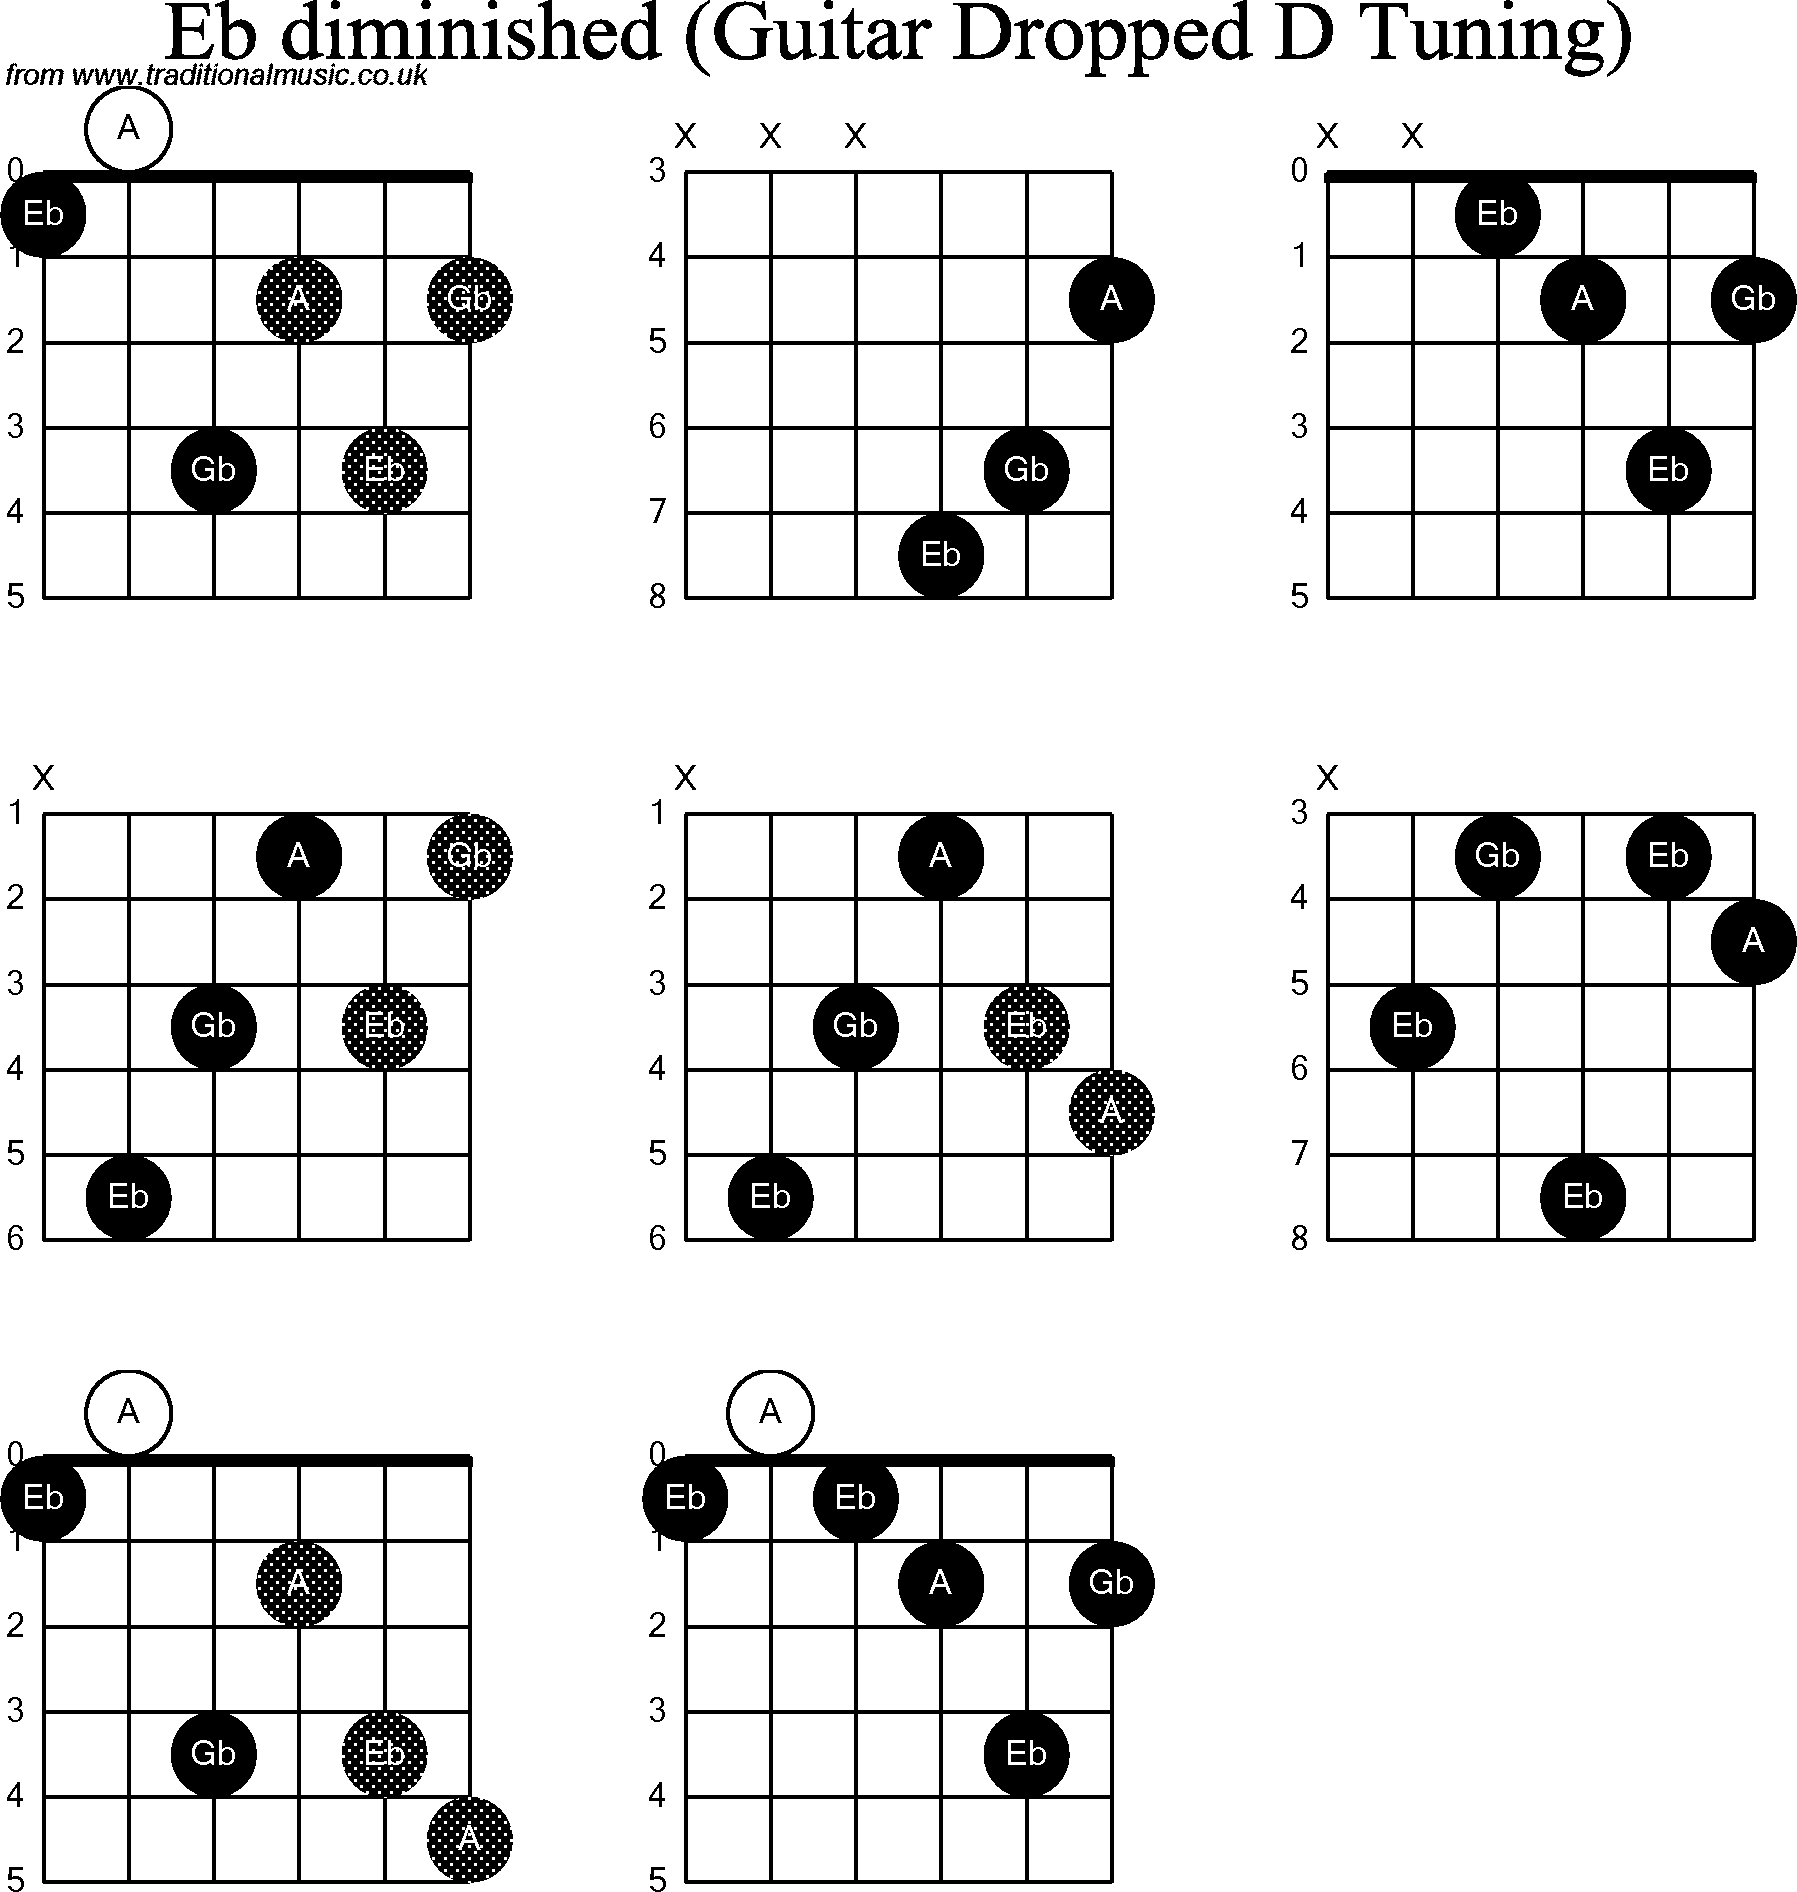 Chord Diagrams For Dropped D Guitardadgbe Eb Diminished